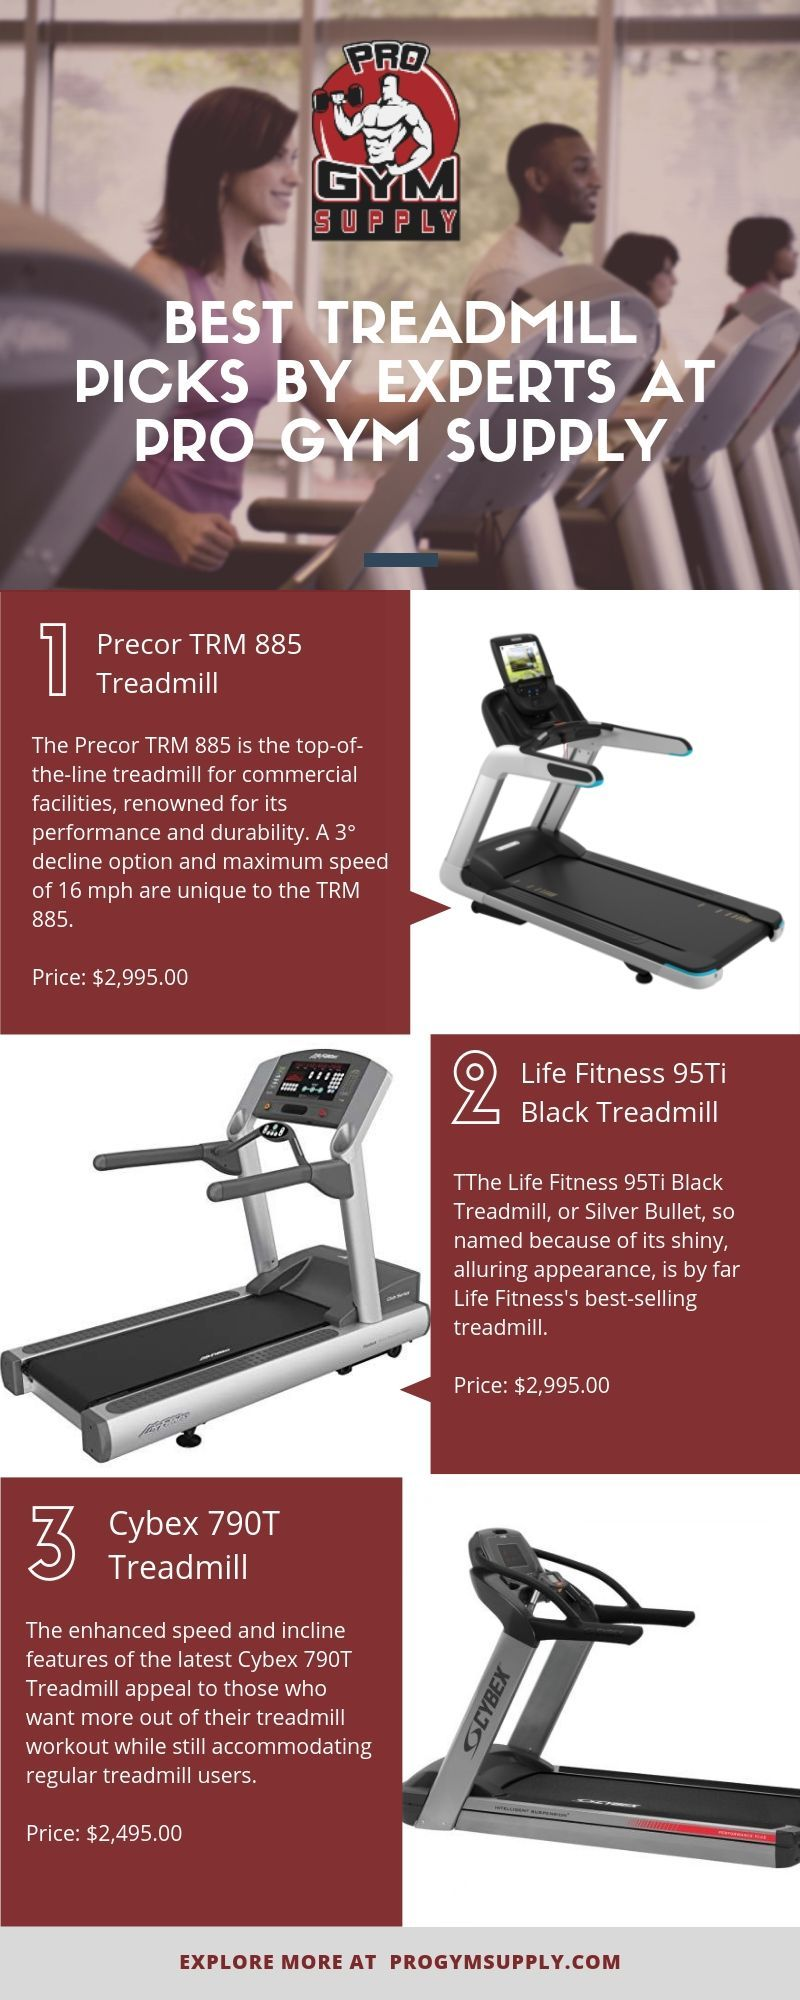 If You Re Looking To Buy A Treadmill Having A Good Quality Treadmill Can Make All The Difference In Used Treadmills For Sale Gym Supplies Treadmills For Sale